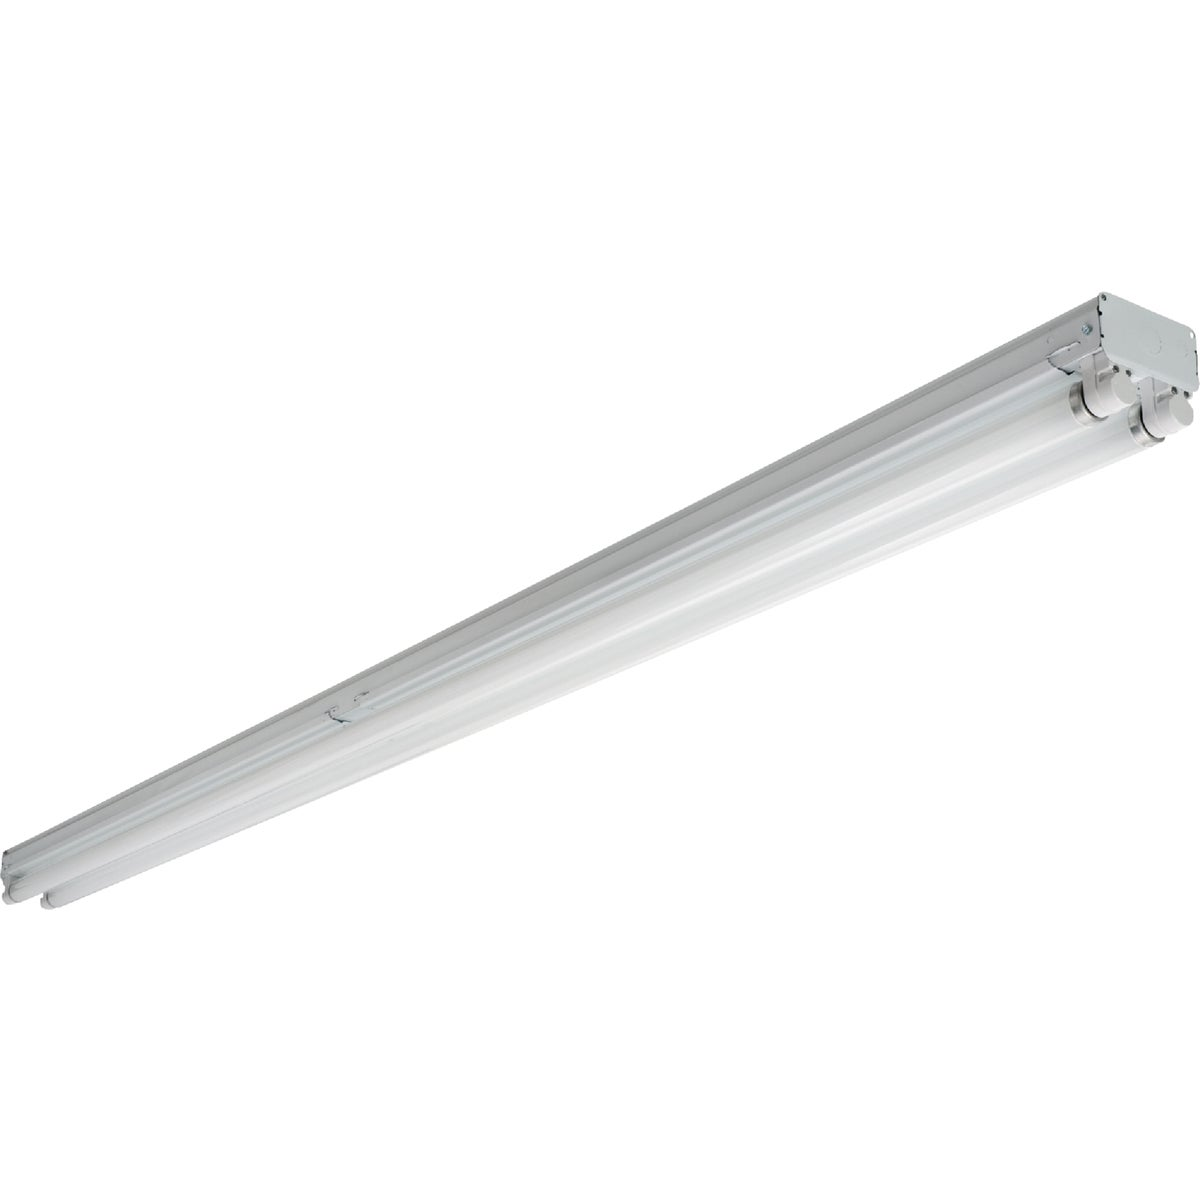 8' T8 2BULB STRIP LIGHT - C296T8120GEB by Lithonia Lighting